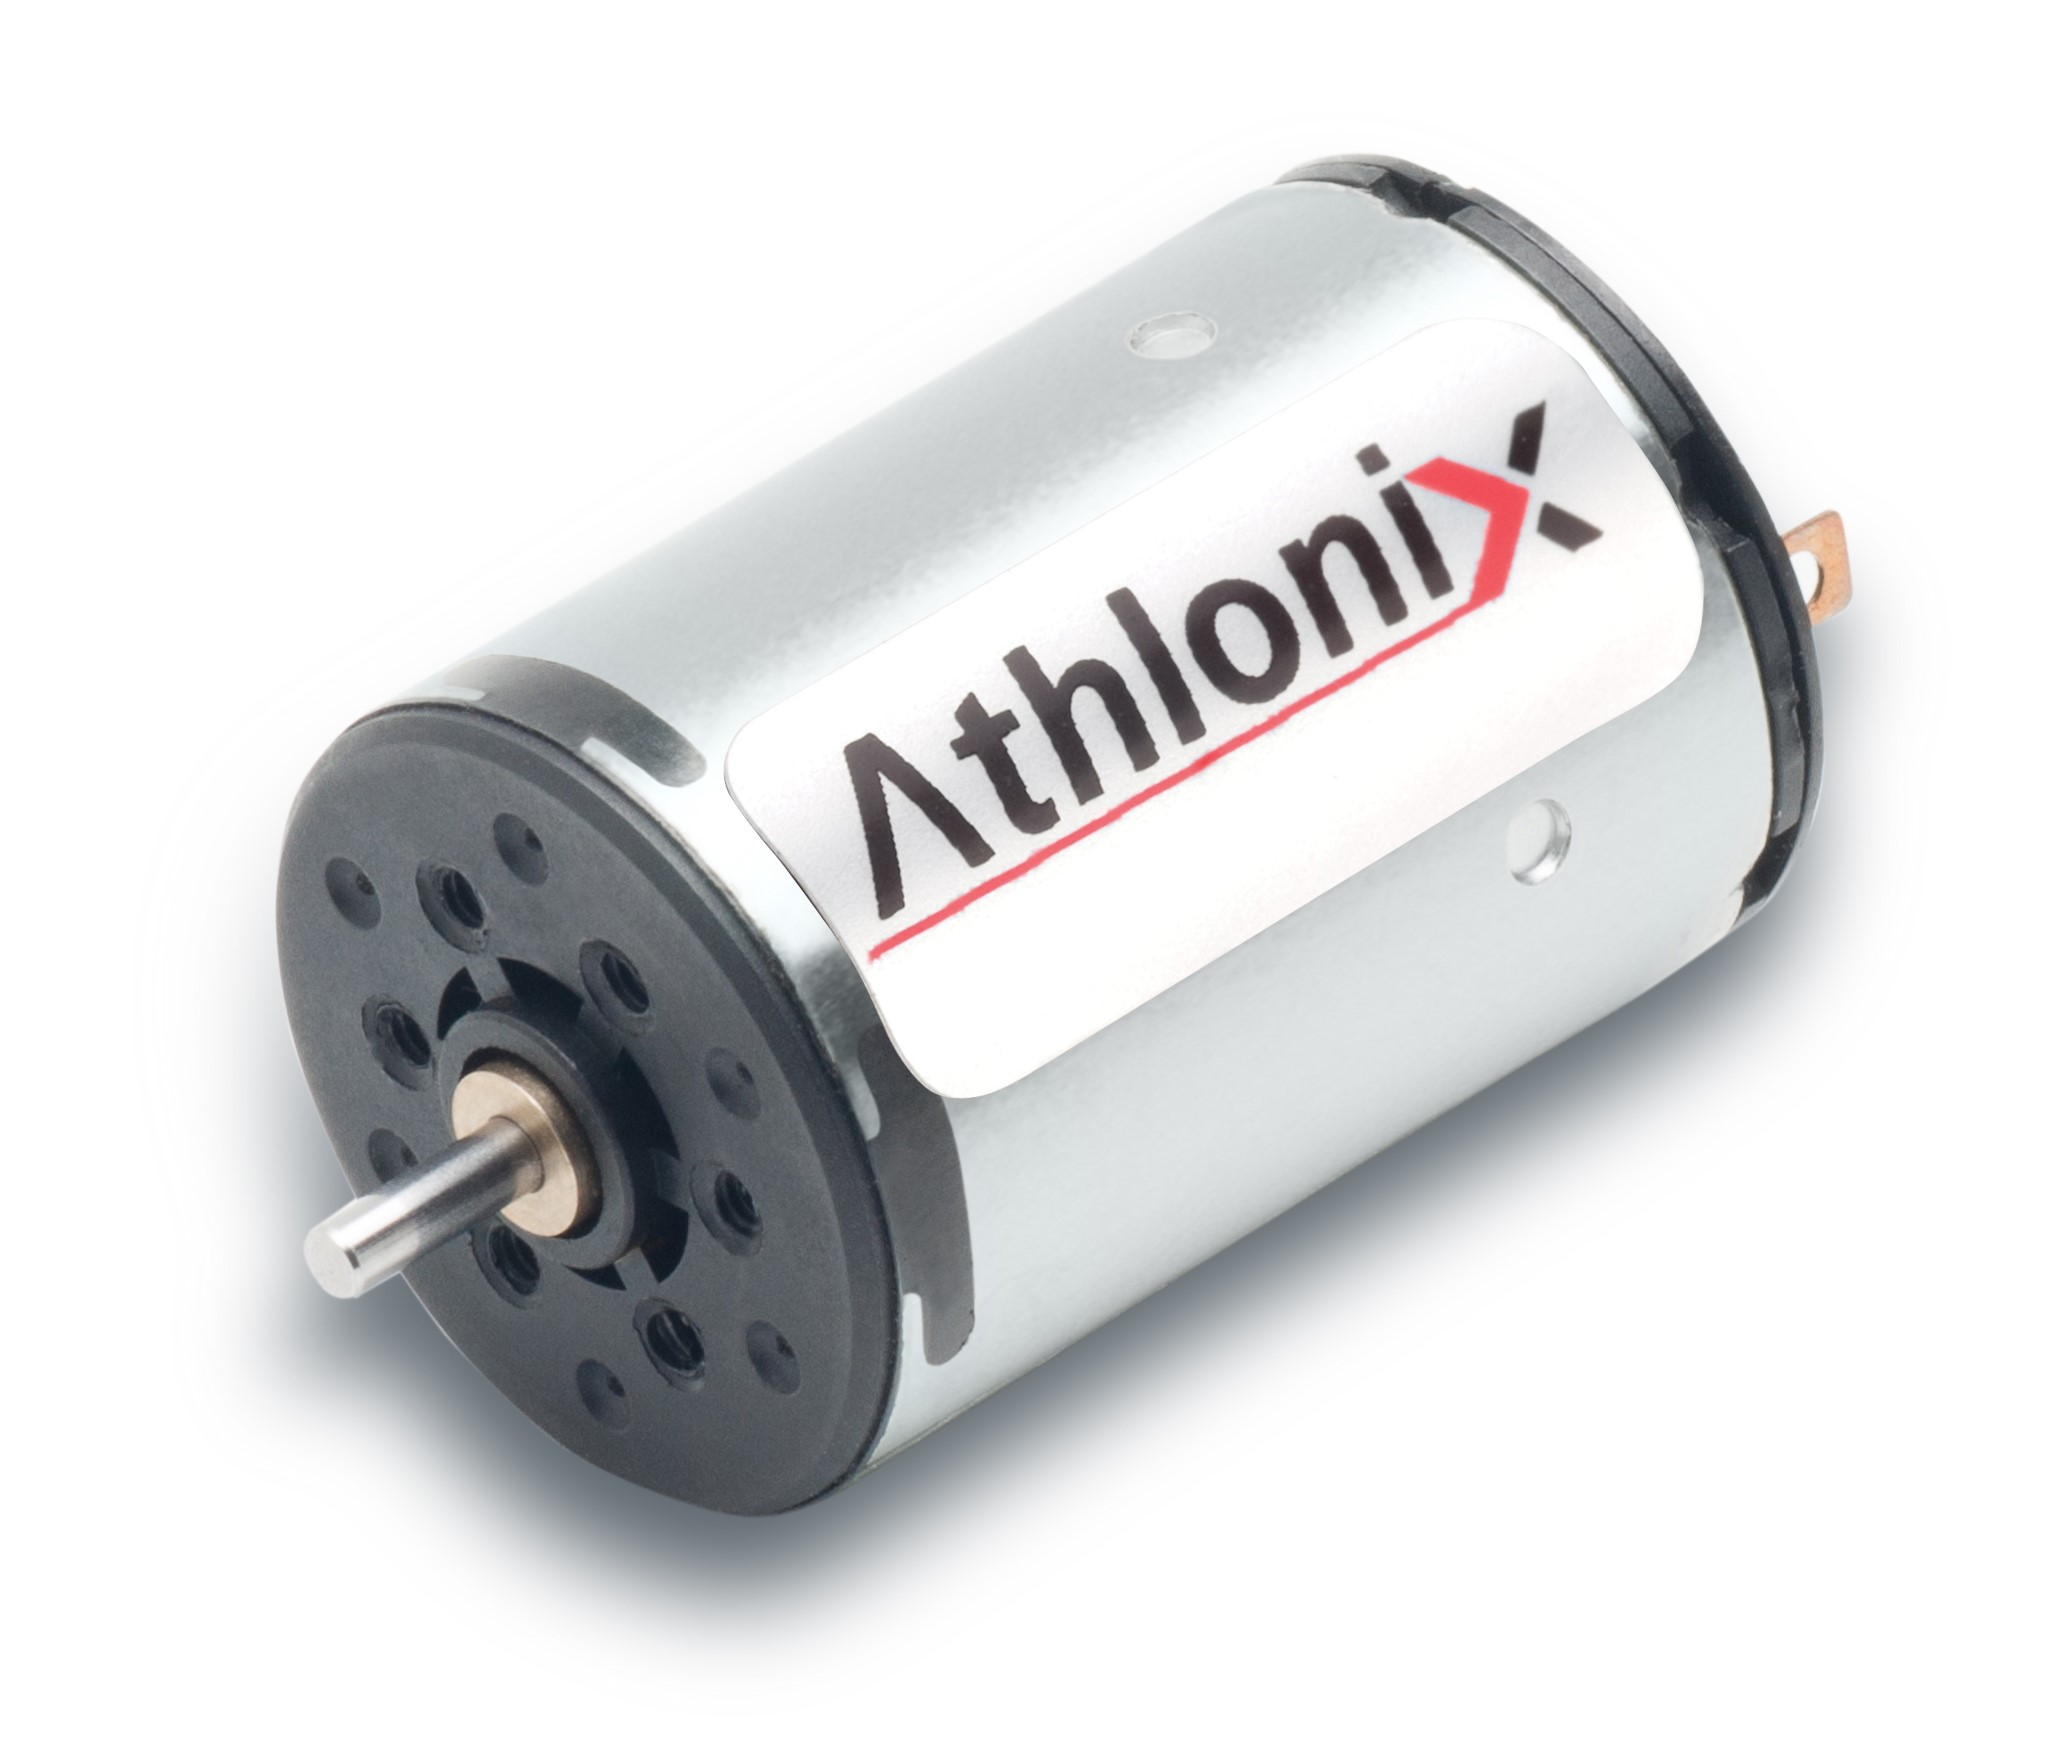 Portescap introduces 22DCT Athlonix DC motor